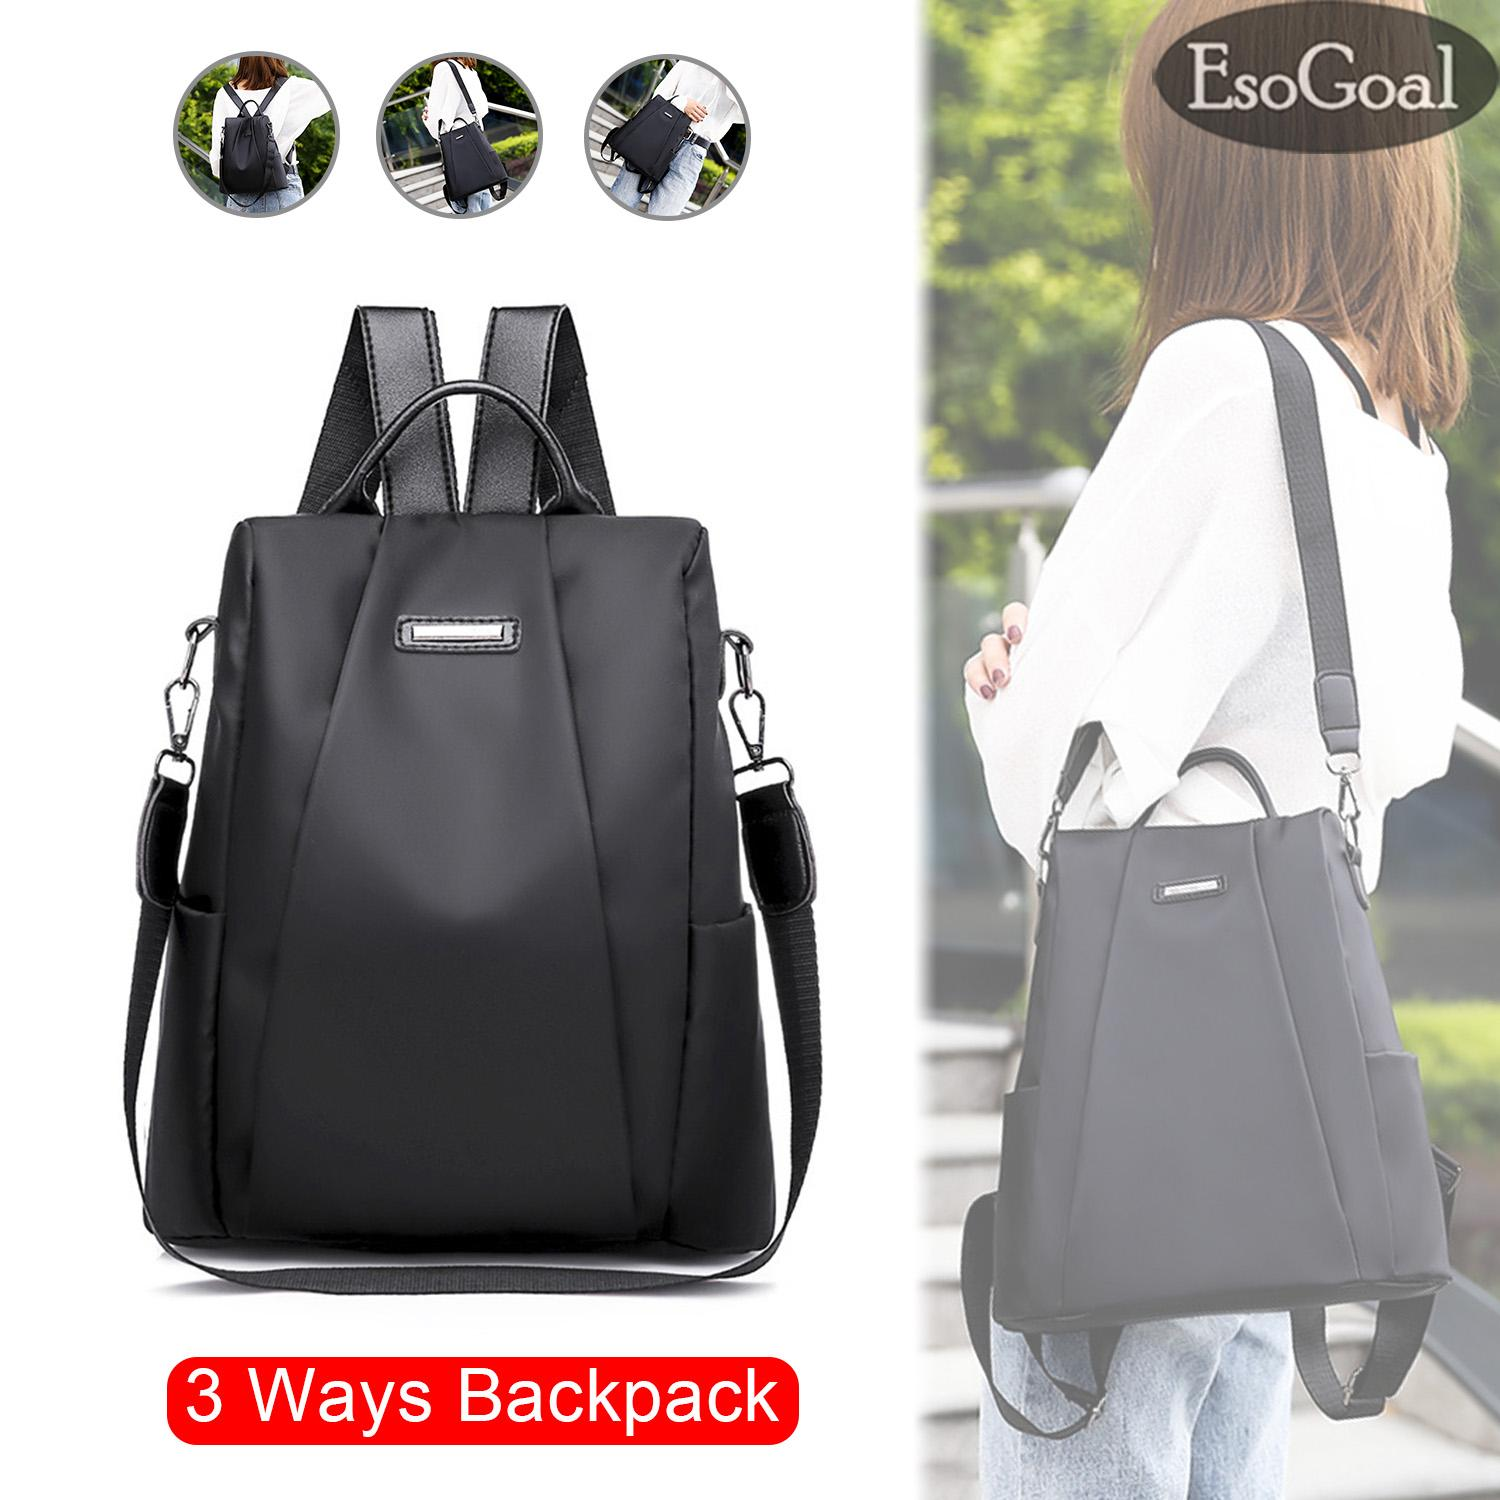 579632cc6a EsoGoal Fashion Women Backpack Shoulder Bag Korea Style Anti-theft Backpack  College School Bag For